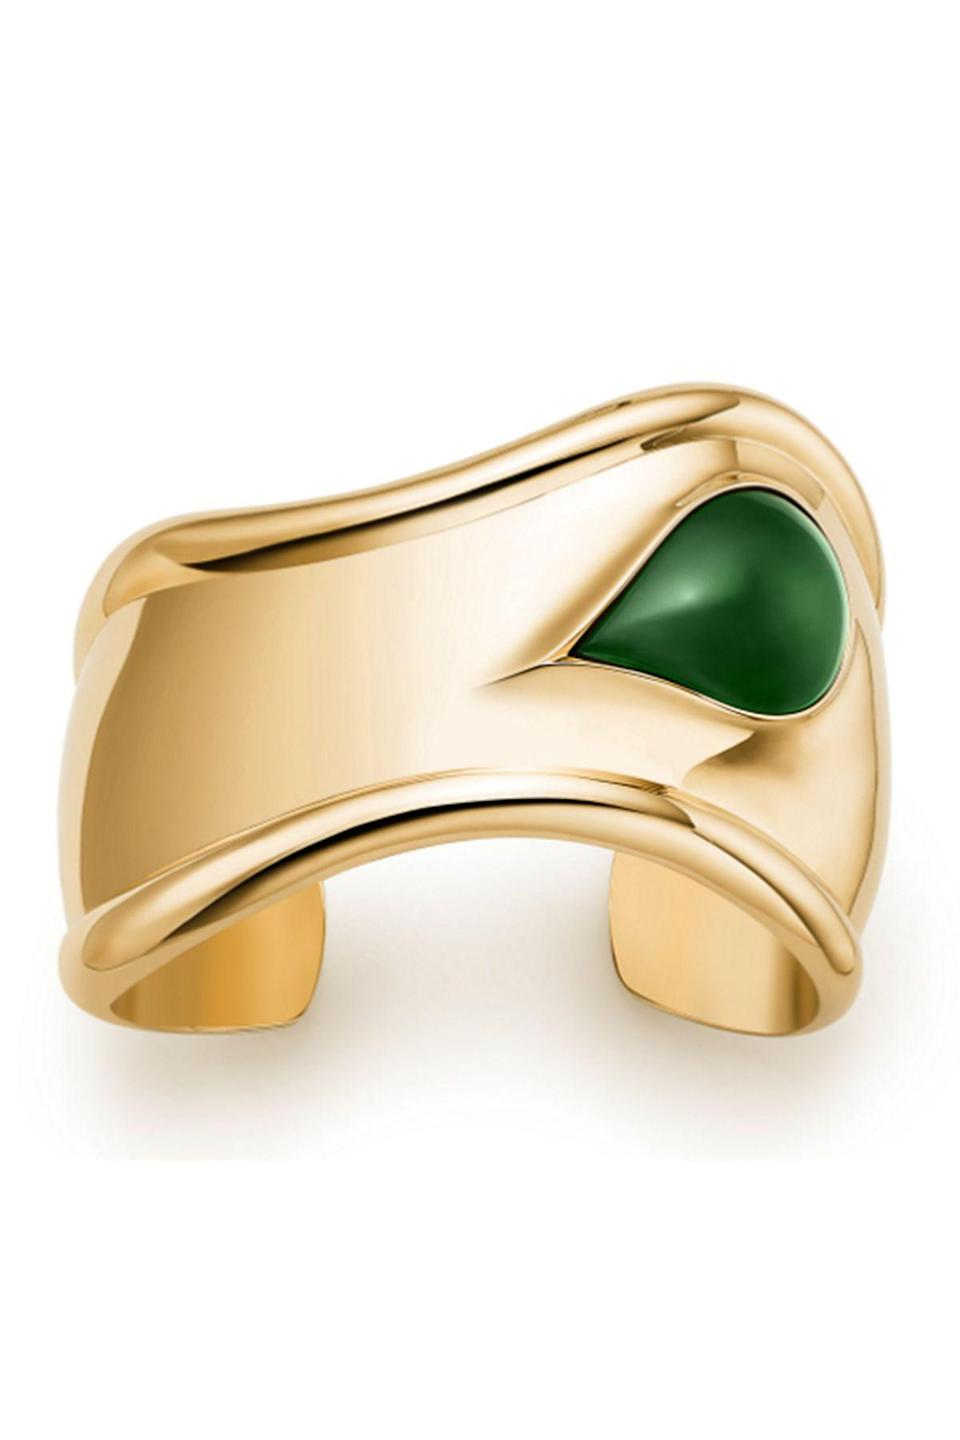 """<p><strong>Tiffany & Co.</strong></p><p>tiffany.com</p><p><strong>$18000.00</strong></p><p><a href=""""https://www.tiffany.com/jewelry/bracelets/elsa-peretti-small-bone-cuff-68282667/"""" rel=""""nofollow noopener"""" target=""""_blank"""" data-ylk=""""slk:Shop Now"""" class=""""link rapid-noclick-resp"""">Shop Now</a></p><p>Go bold with this gold and emerald bangle from Tiffany & Co. It's perfect for a formal dinner gown or a simple white t-shirt and jeans.</p>"""